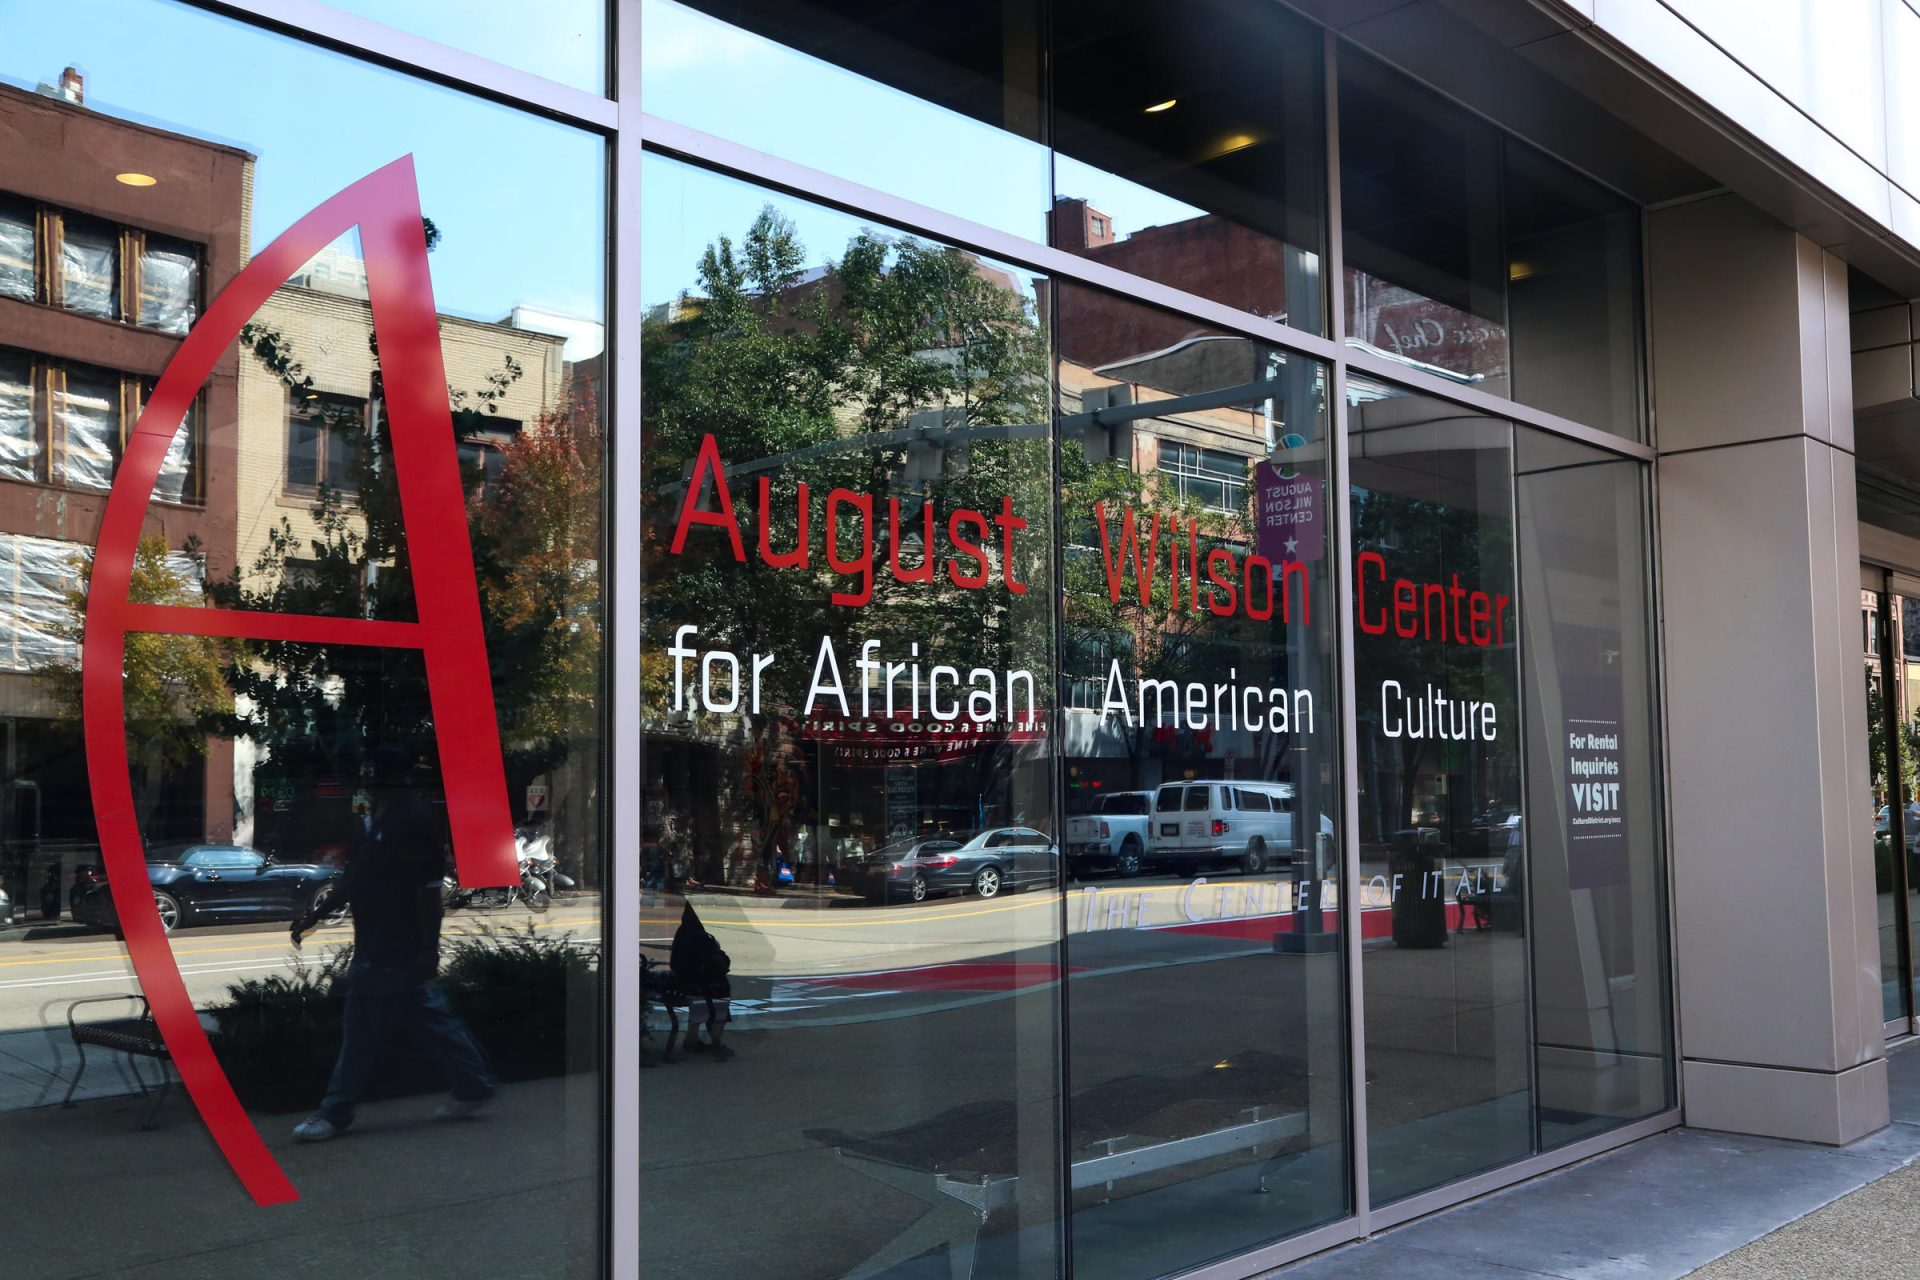 The August Wilson African American Cultural Center.